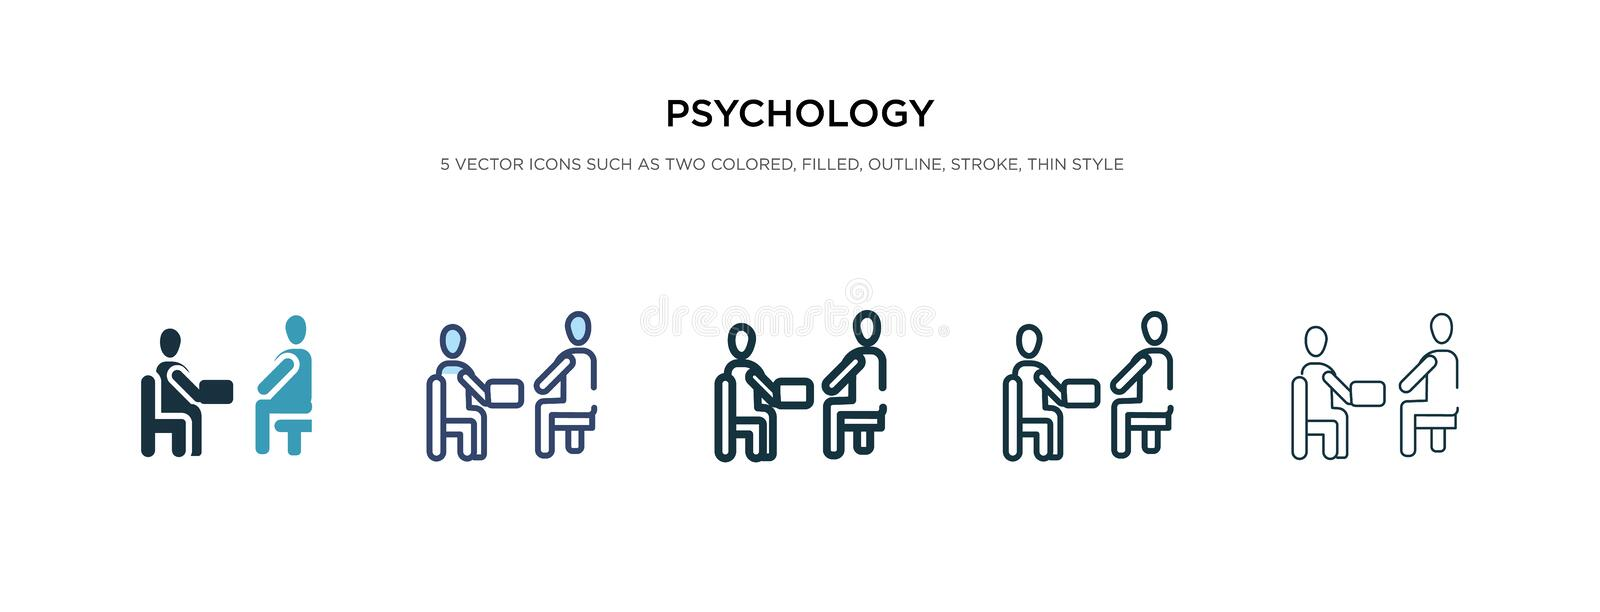 Psychology icon in different style vector illustration. two colored and black psychology vector icons designed in filled, outline. Line and stroke style can be stock illustration